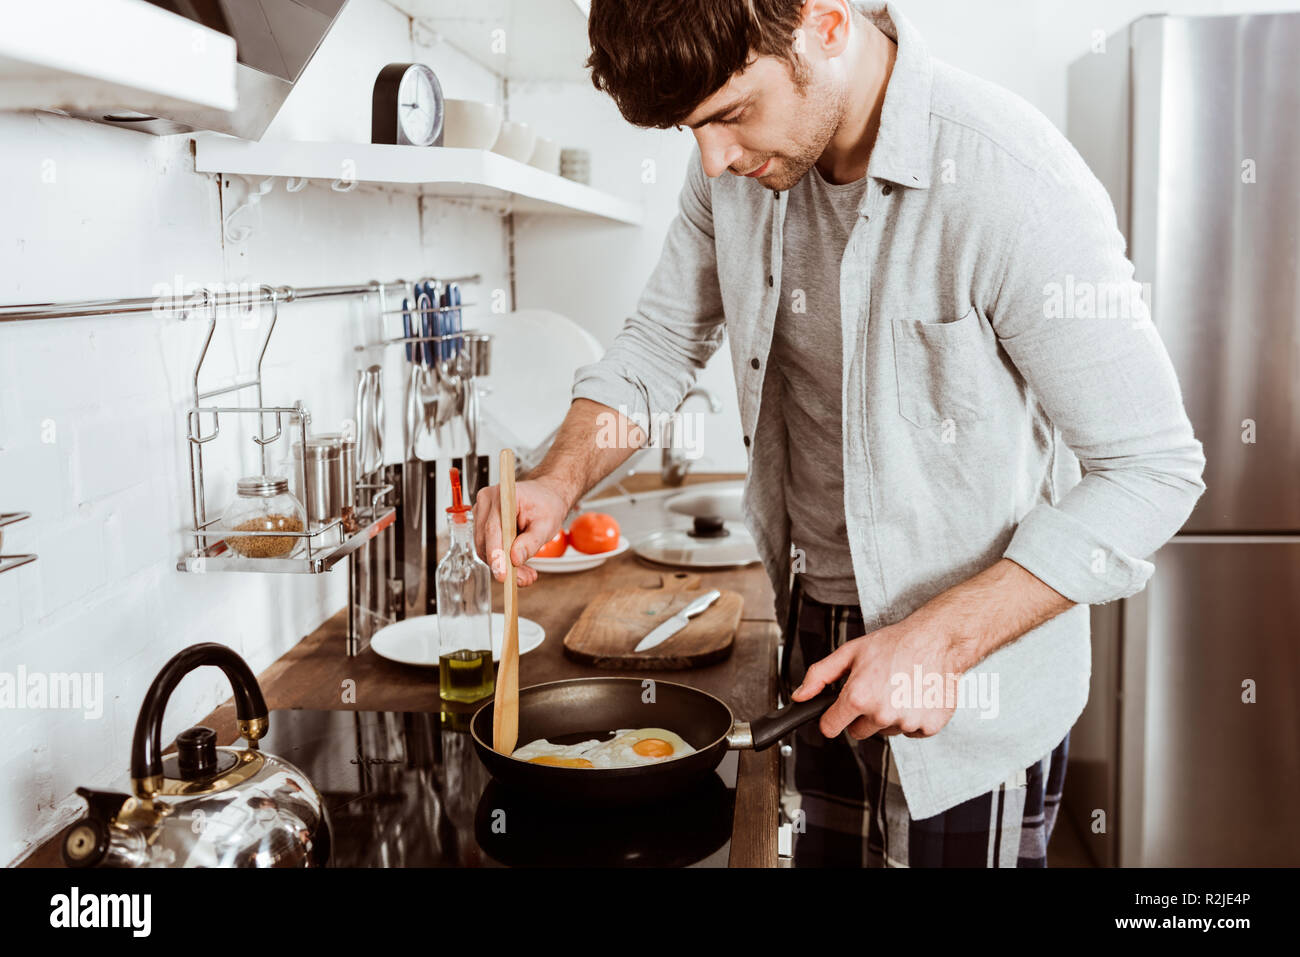 handsome young man making eggs on breakfast in kitchen at home - Stock Image